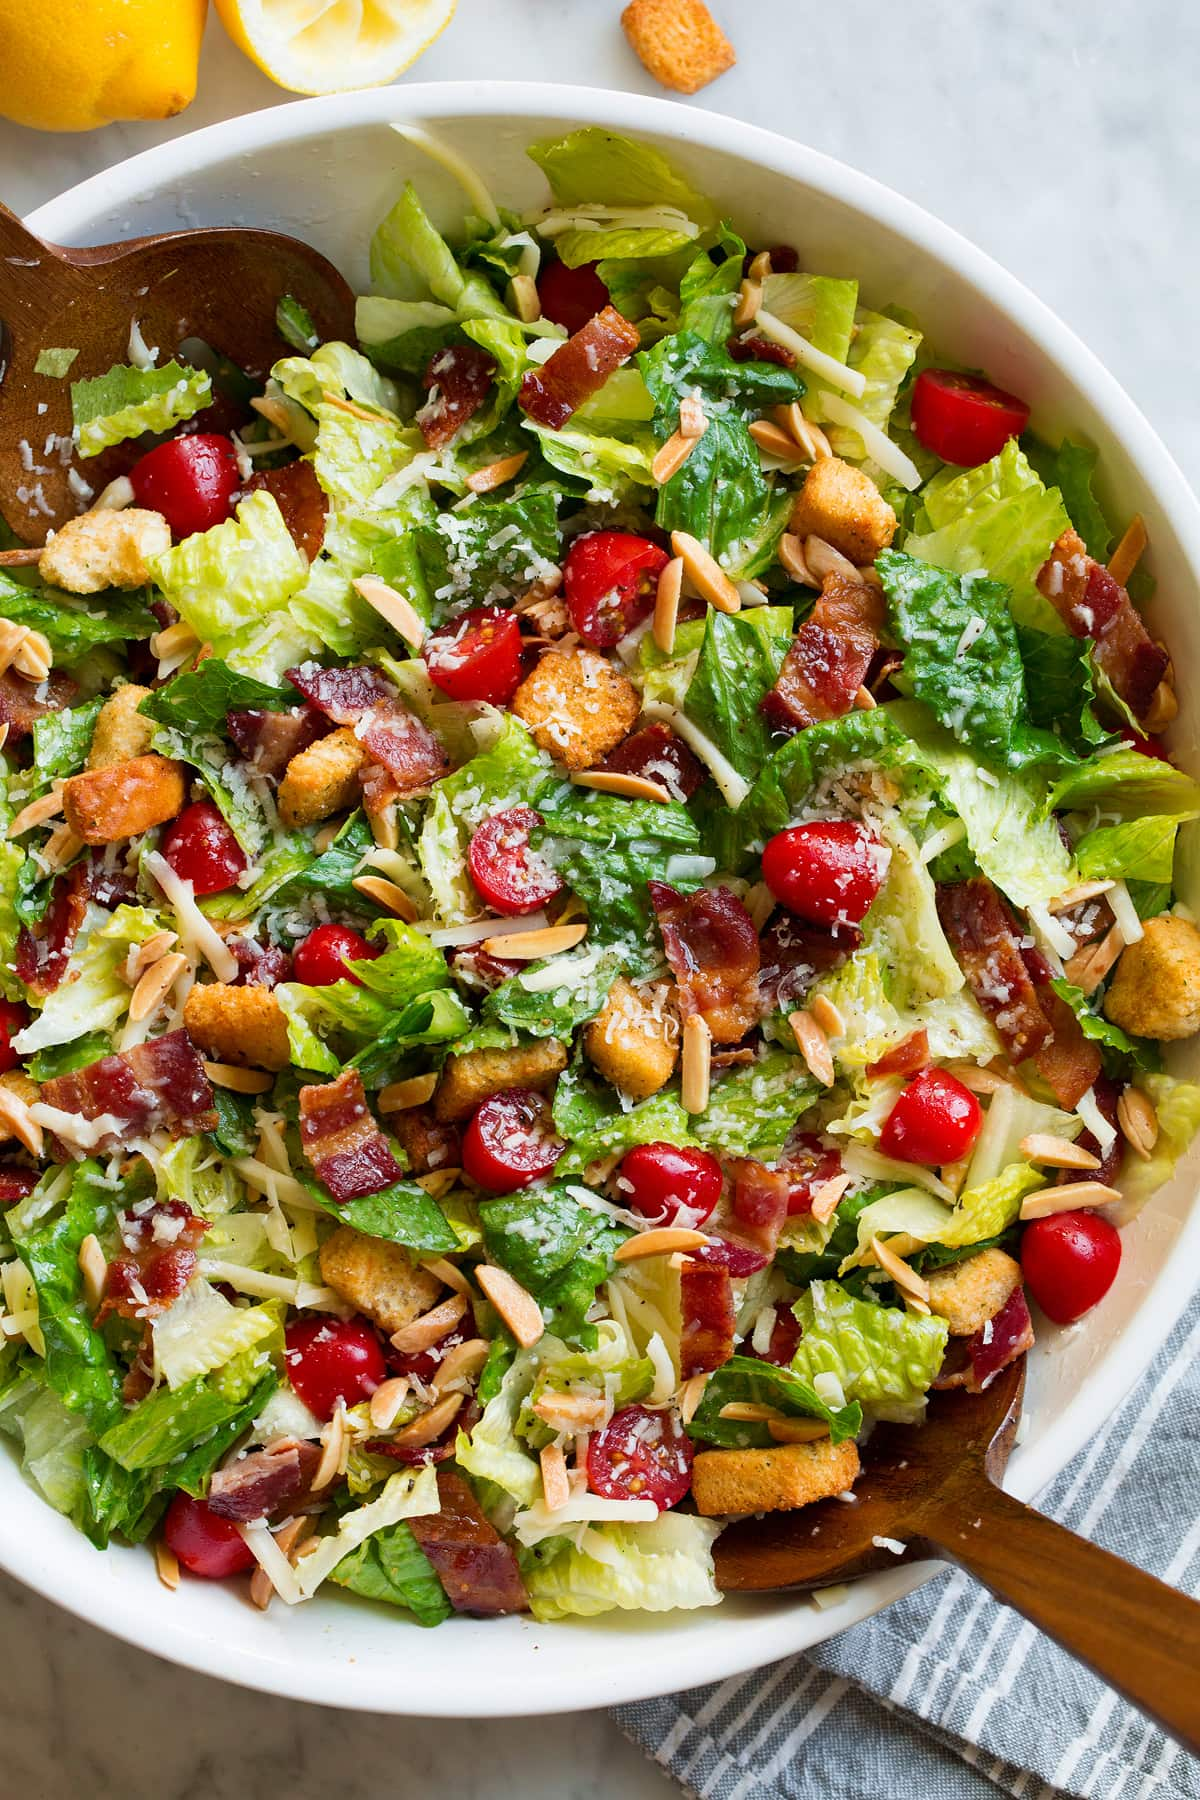 The Best Salad in a large salad bowl. Salad includes romaine lettuce, bacon, croutons, parmesan, swiss cheese, almonds, grape tomatoes and lemon vinaigrette dressing.